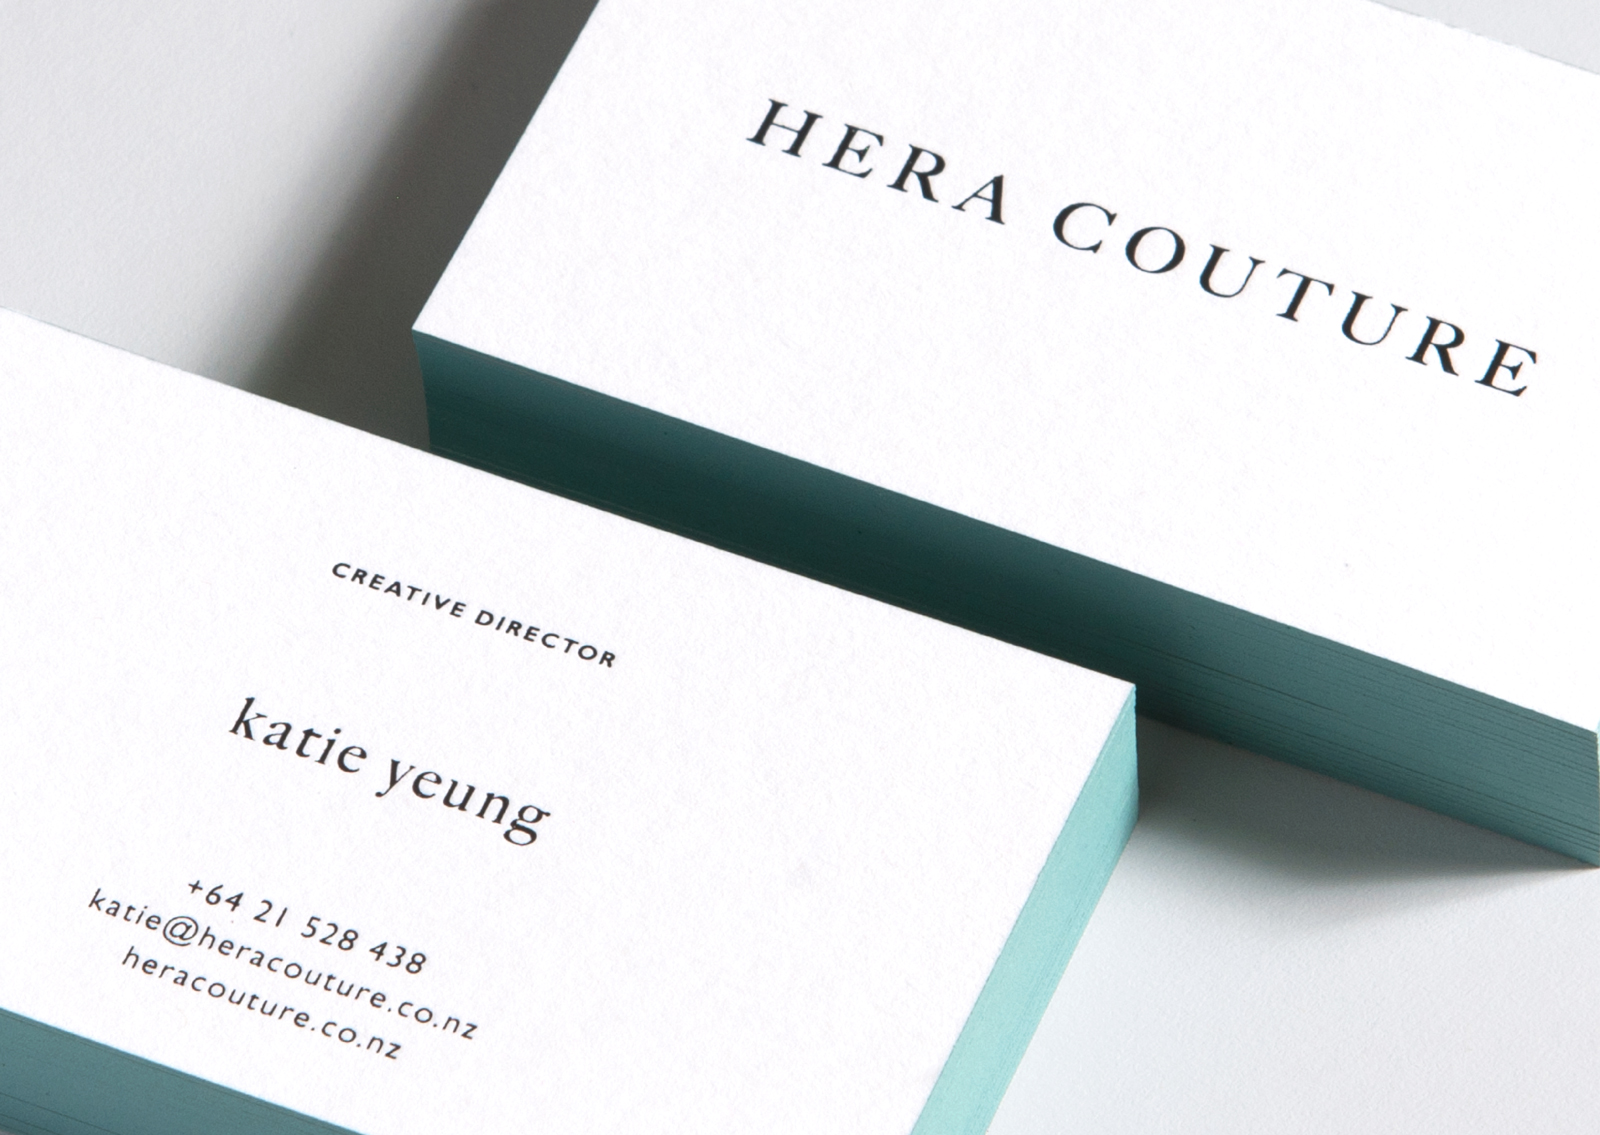 Hera Couture letterpress business cards have aqua painted edges and black foil type